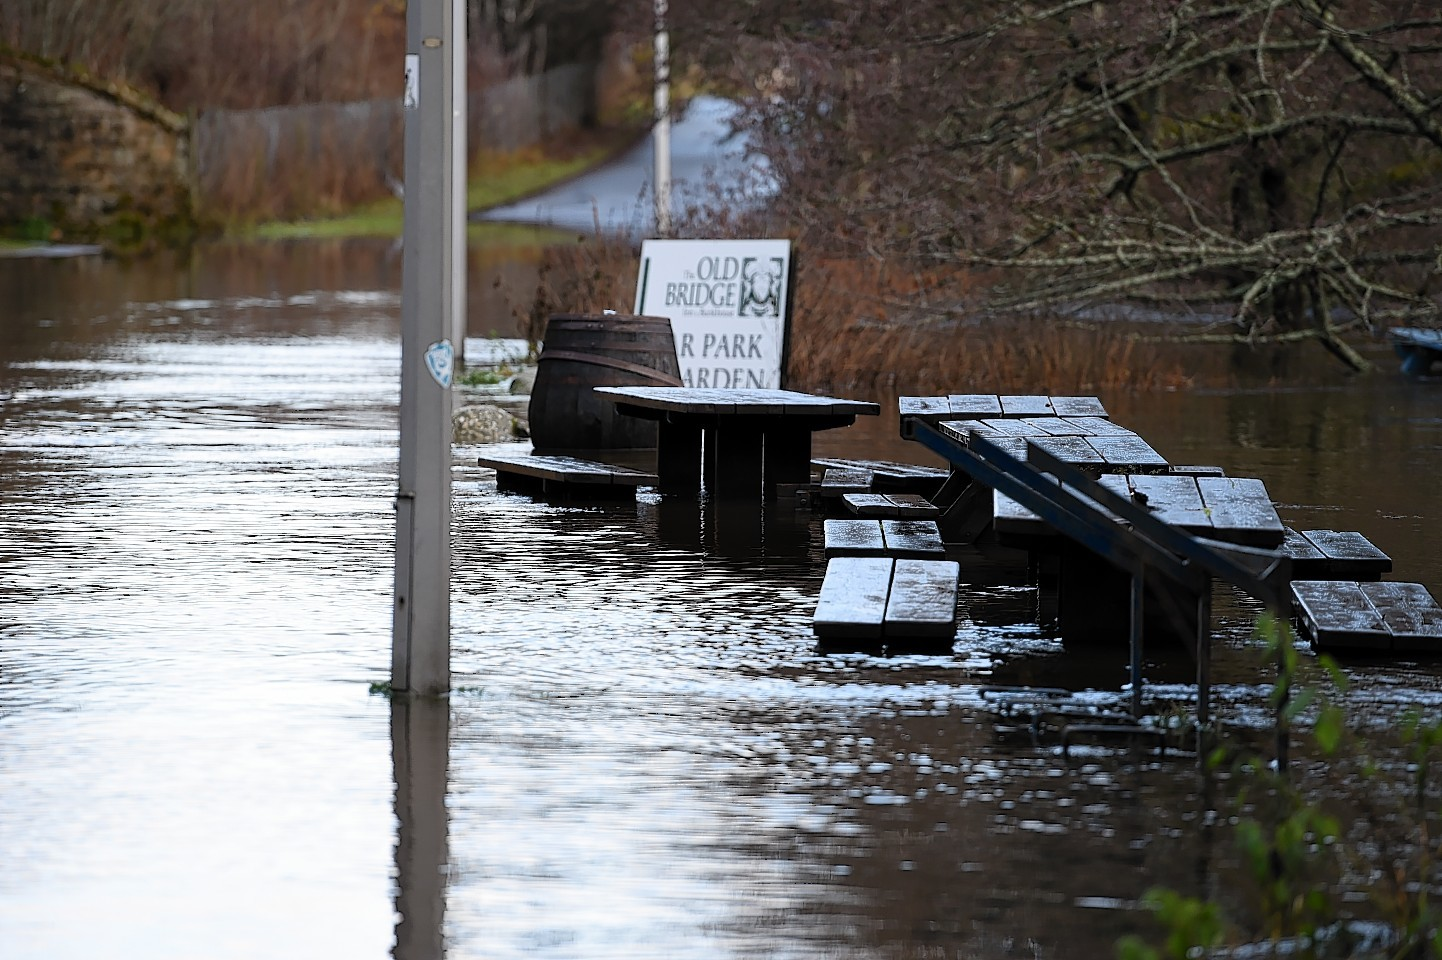 Flooding in Aviemore. The Old Bridge Inn. Picture by Gordon Lennox 06/12/2015